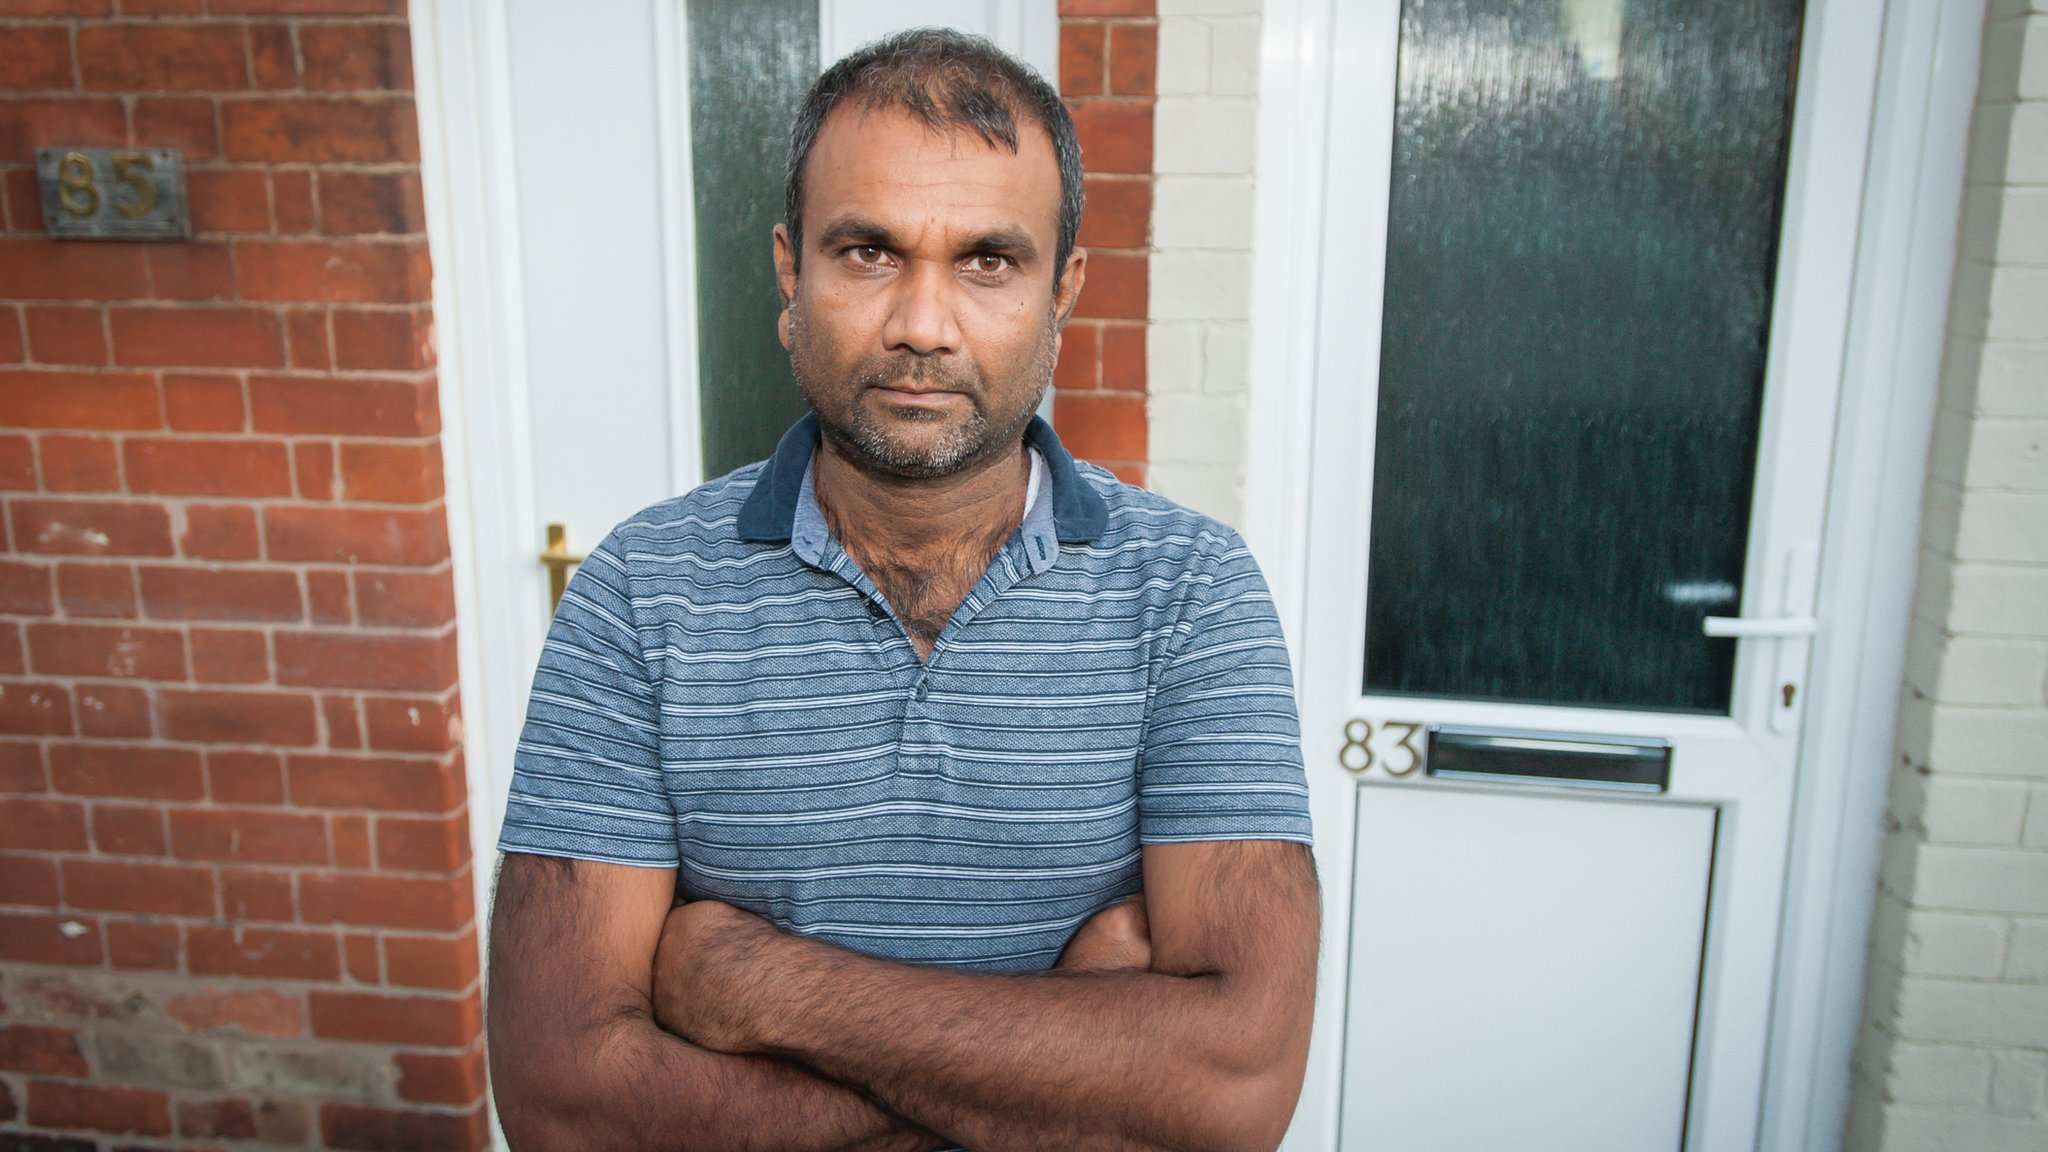 Man mistakenly listed as owner of extra council house